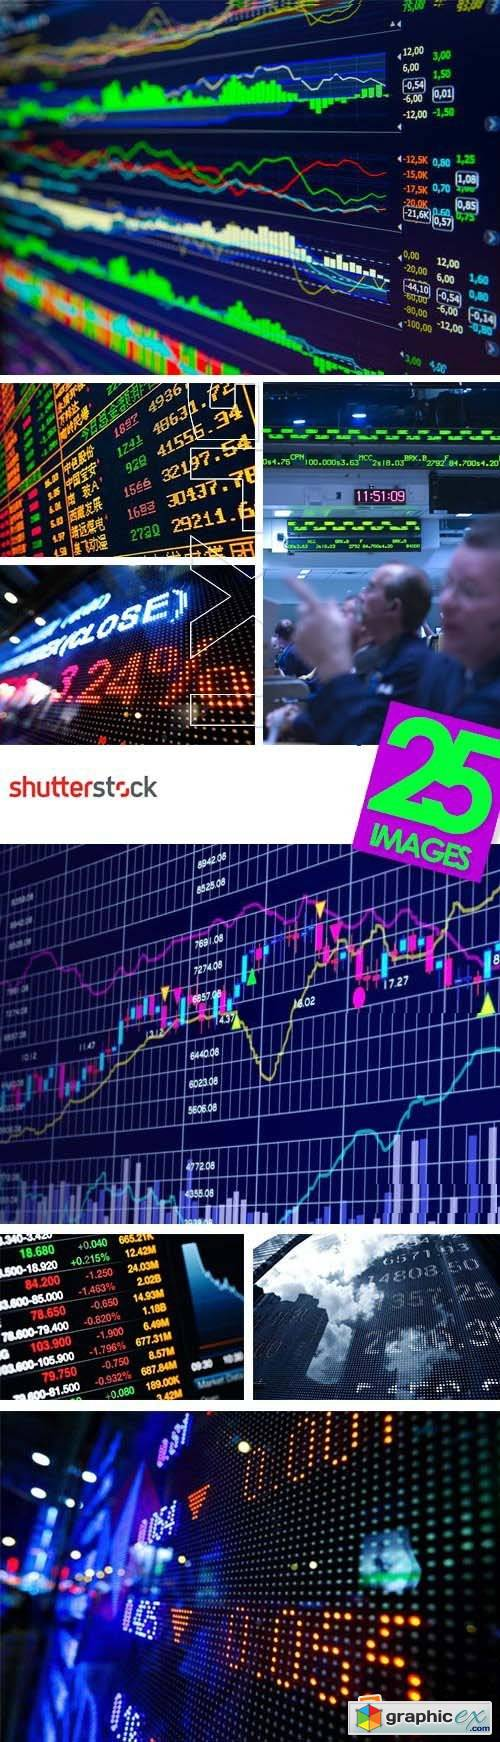 Stock & Forex Market Display Boards 25xJPG